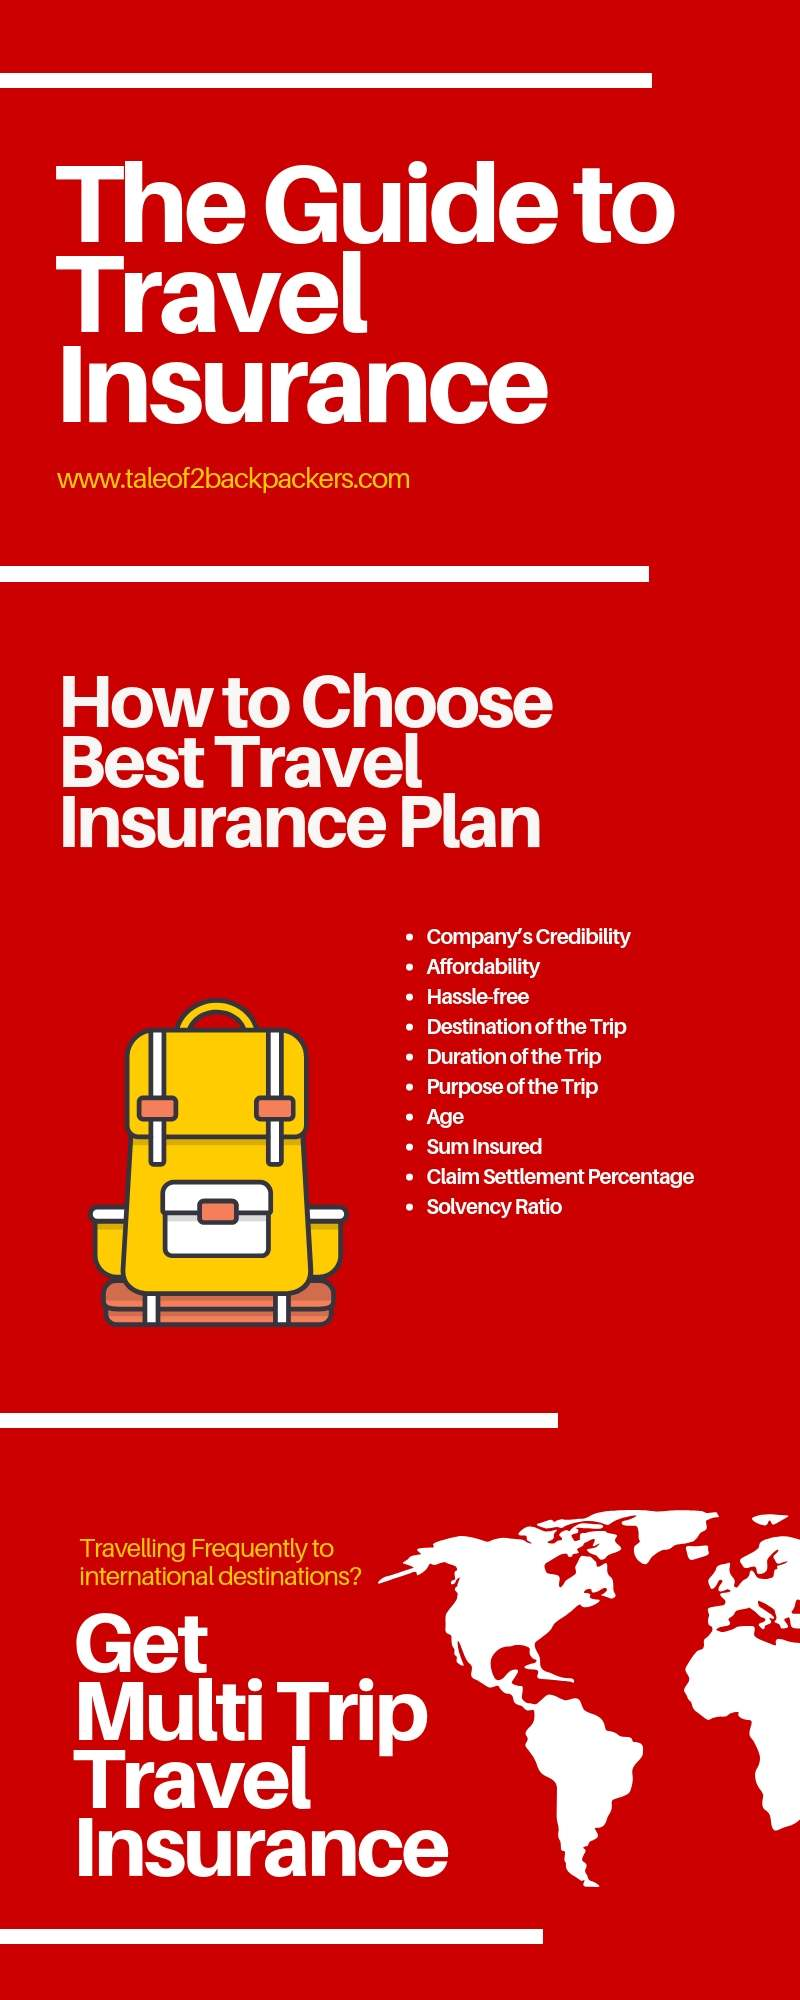 Travel Insurance infographic